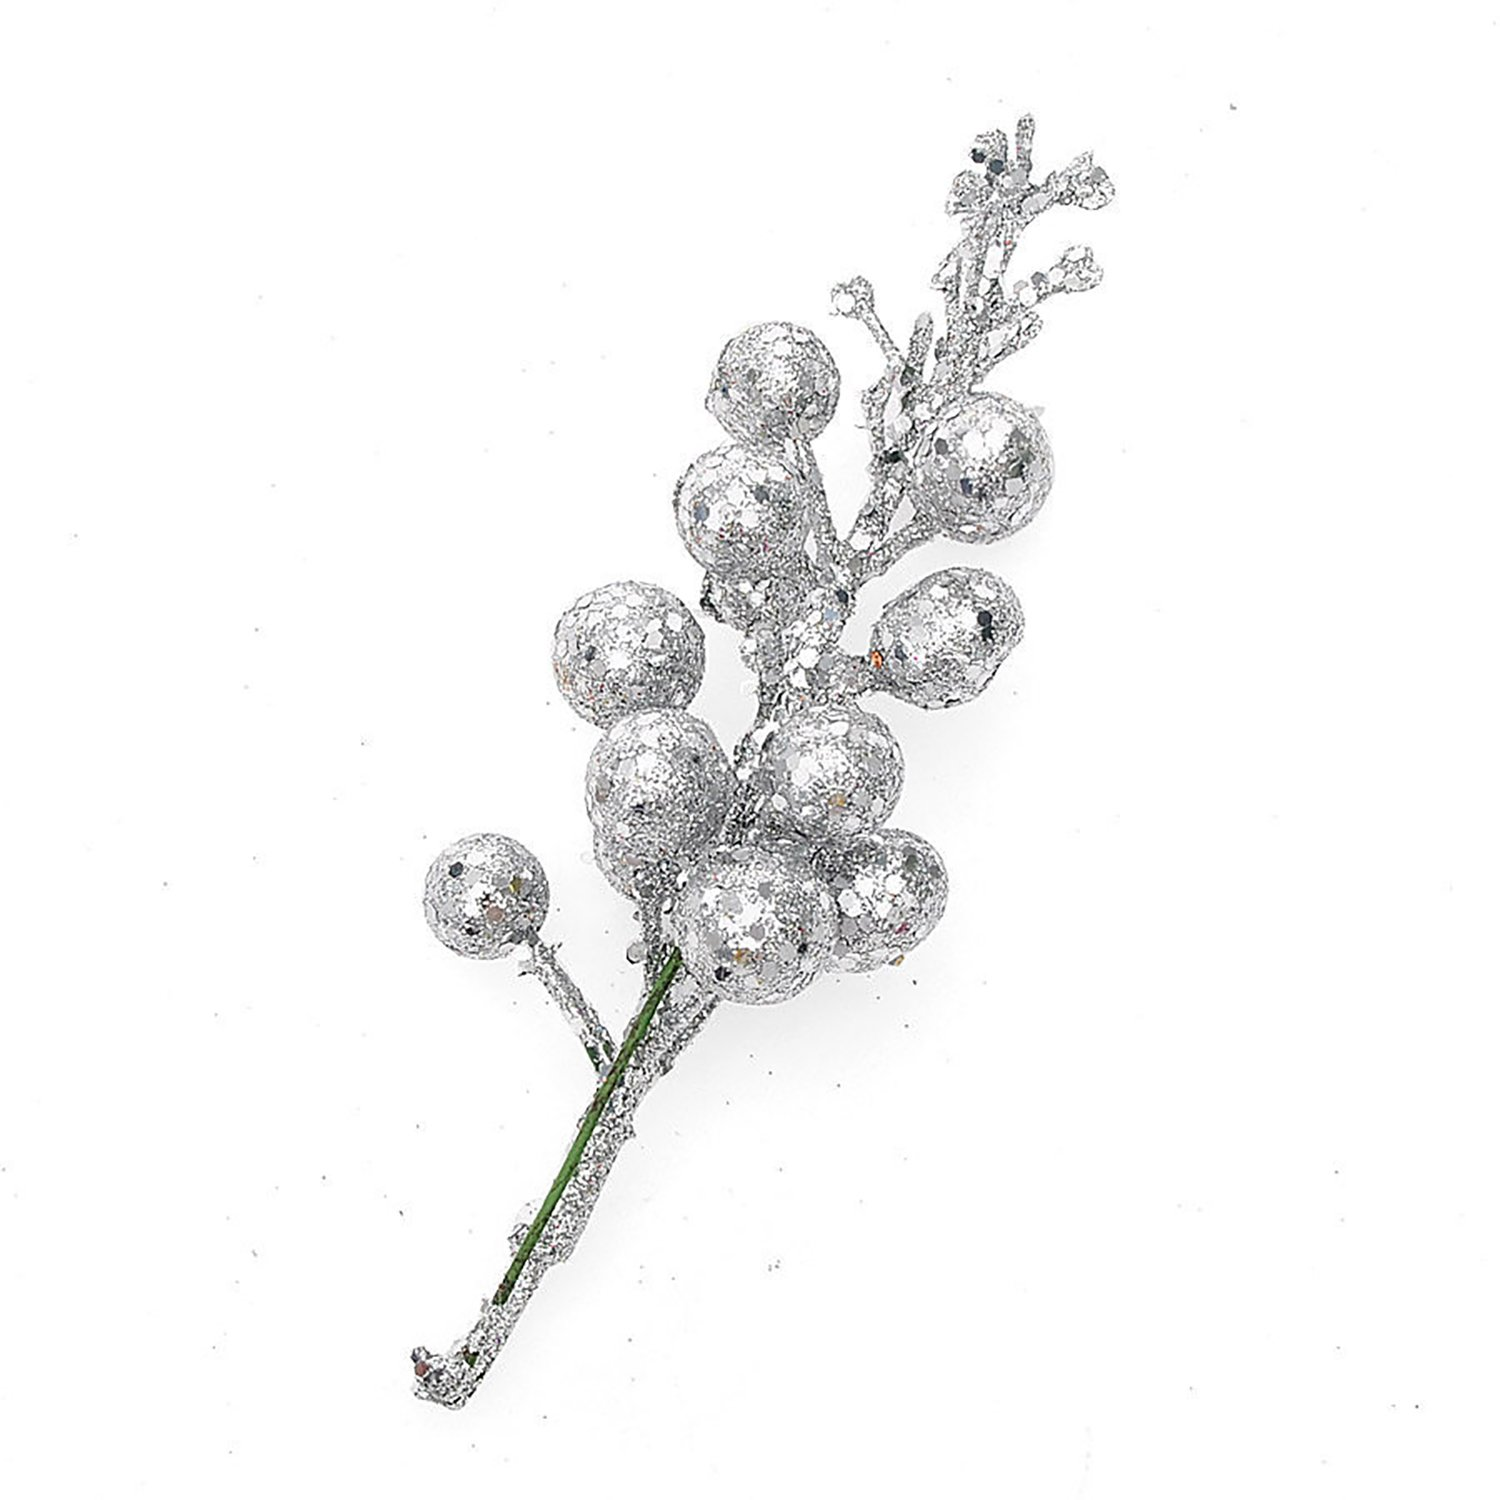 Decorate Christmas Garland with Glittery Silver Artificial Berry Picks | ChristmasTablescapeDecor.com